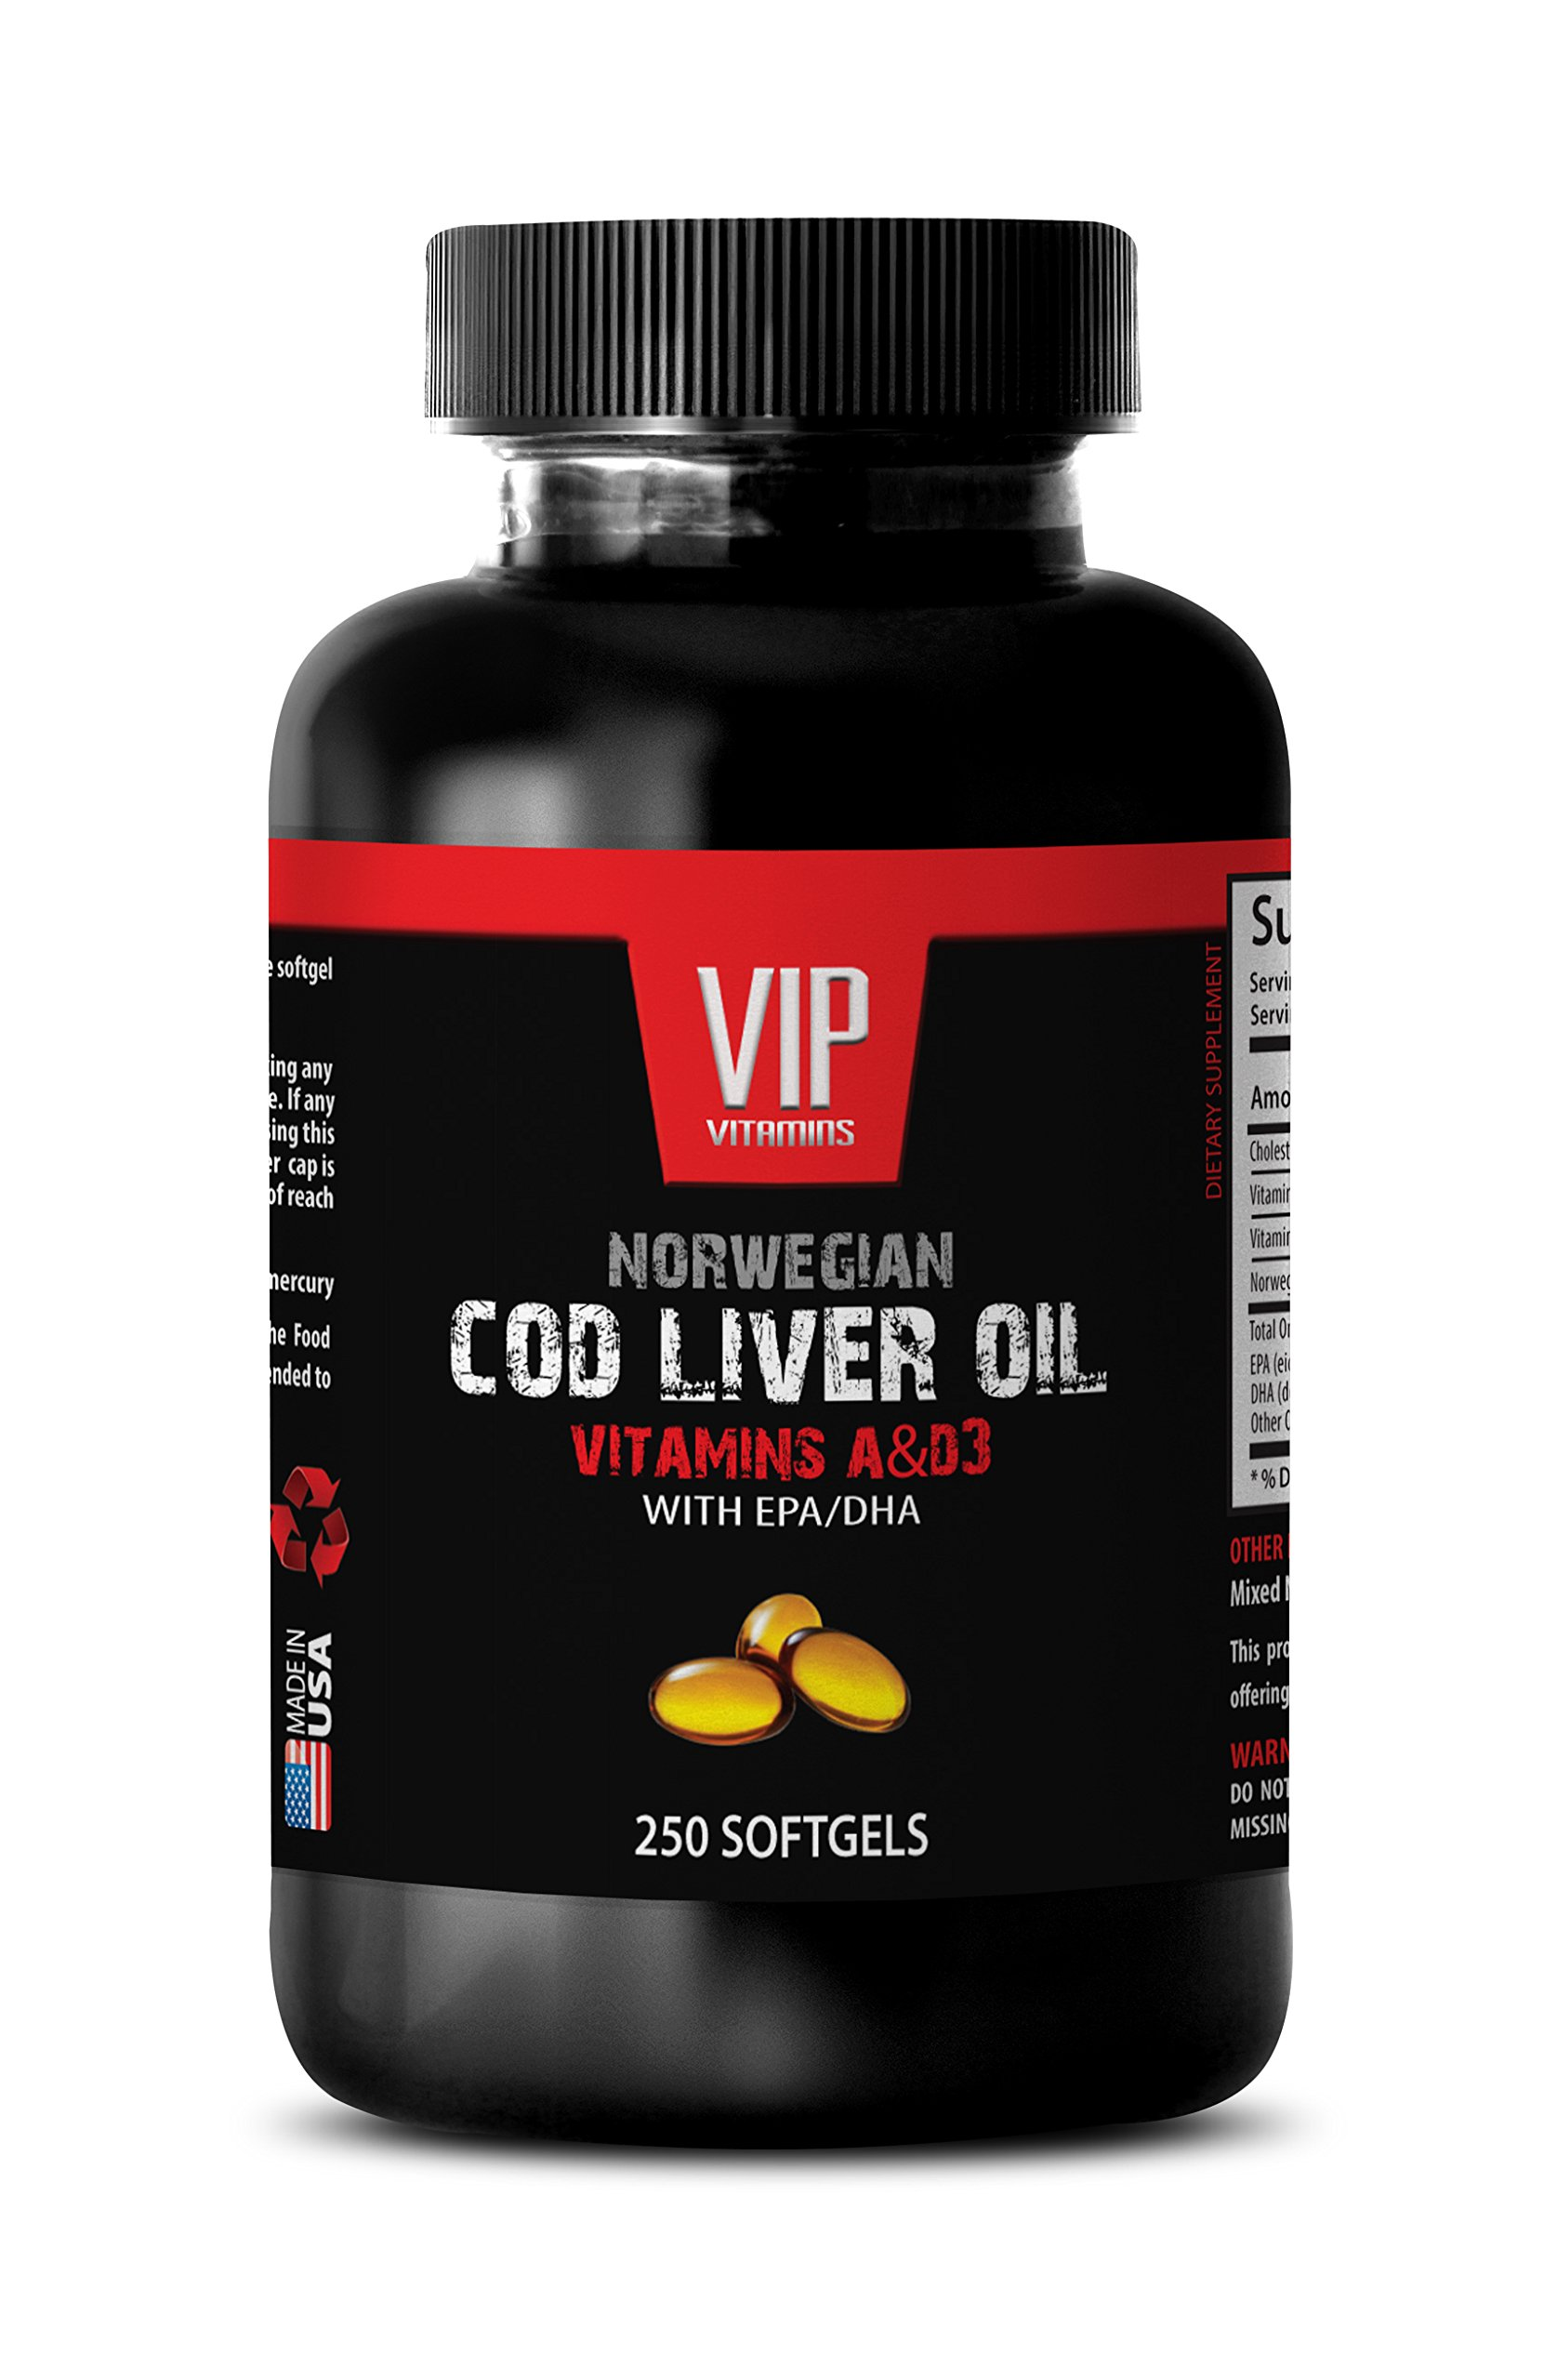 NORWEGIAN COD LIVER OIL with Vitamins A & D3/EPA & DHA - Digestive aid - 1 Bottle 250 Softgels